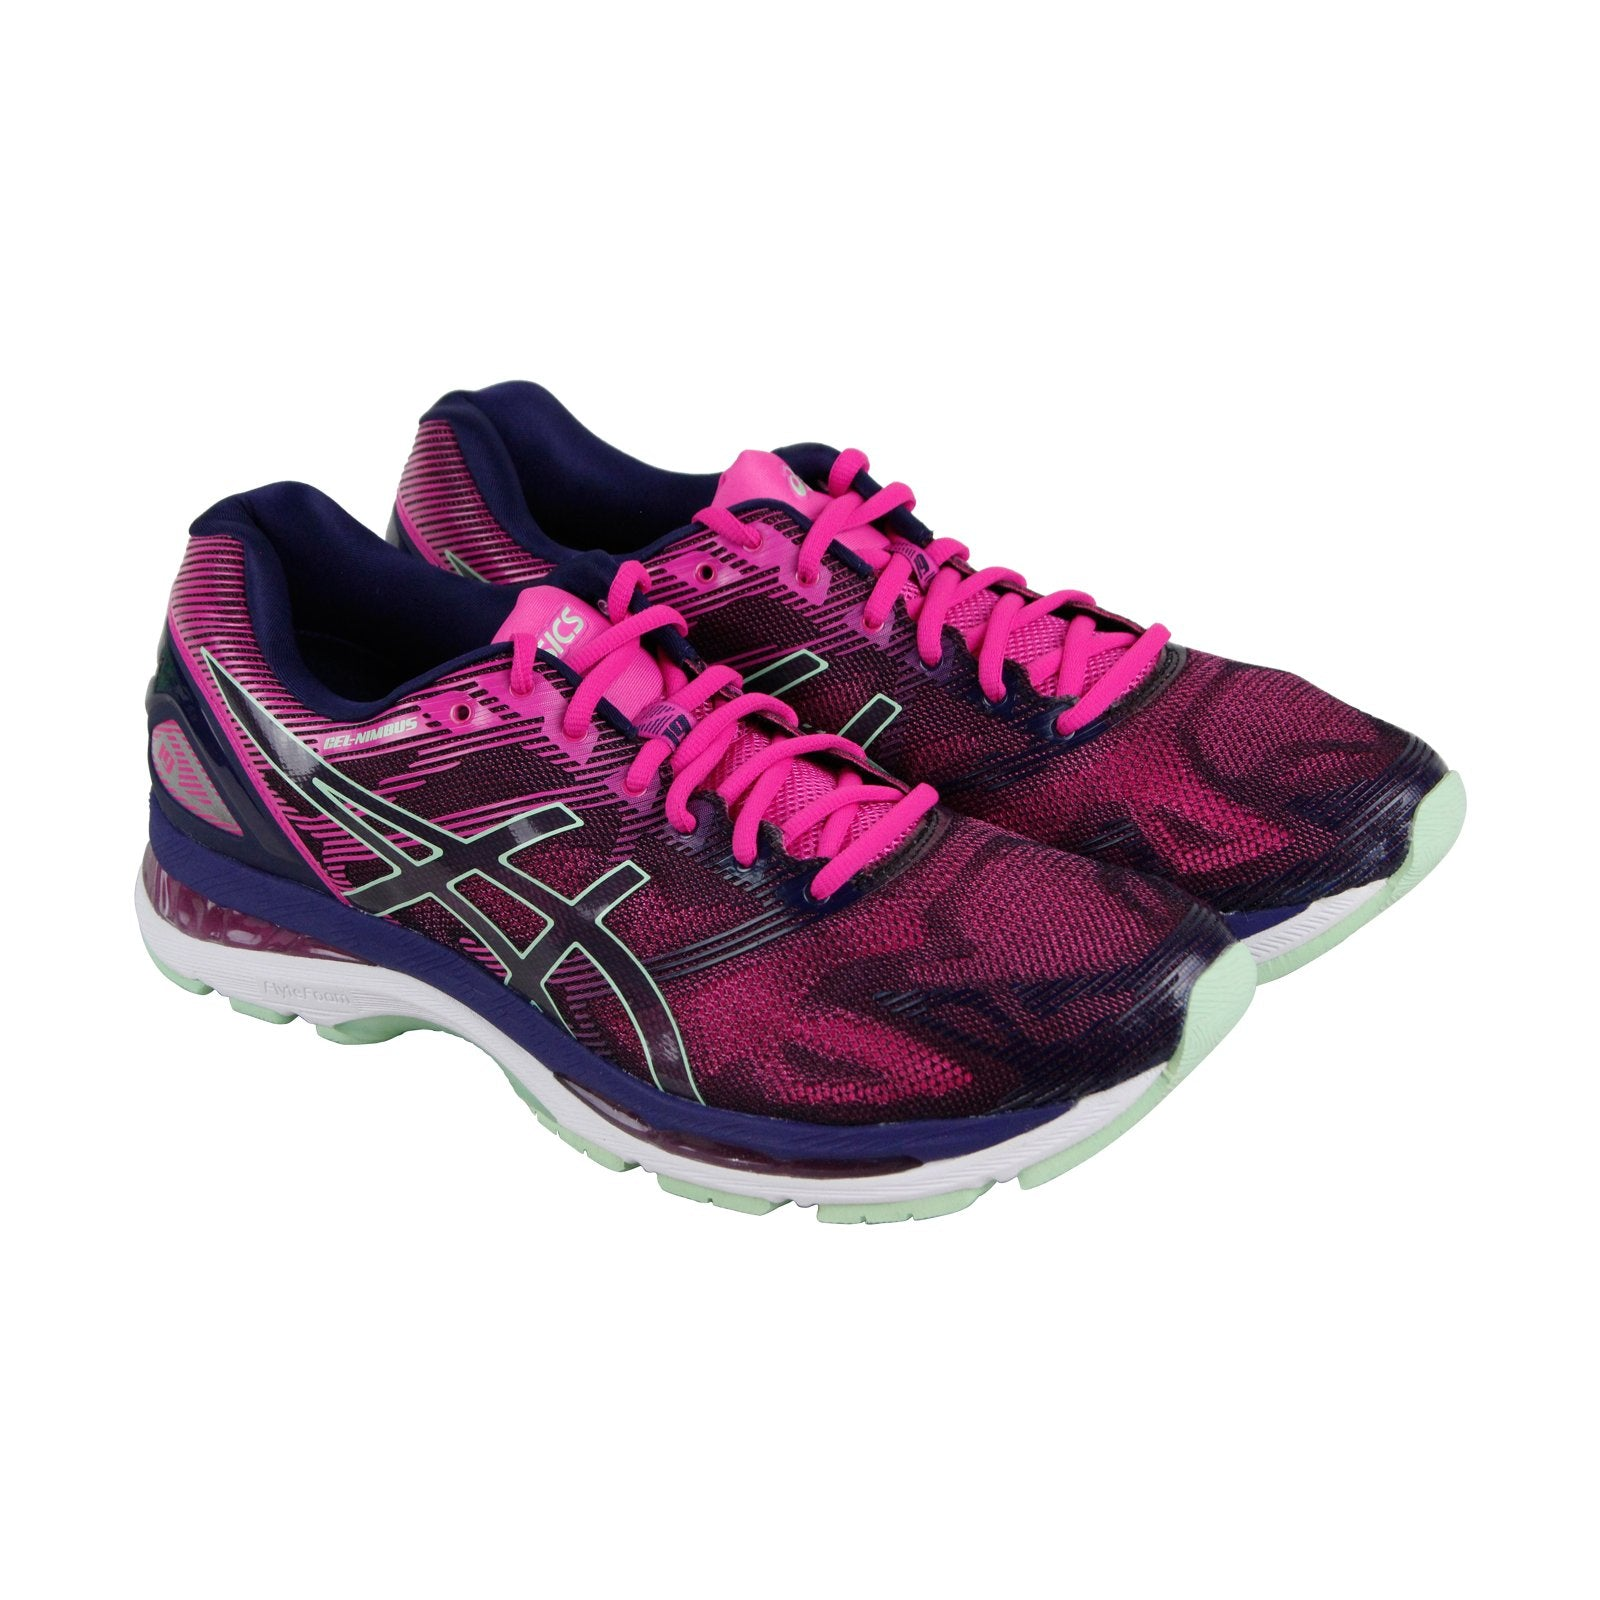 the best attitude f5f8c 6abdb Asics Gel Nimbus 19 Womens Pink Nylon Athletic Lace Up Running Shoes